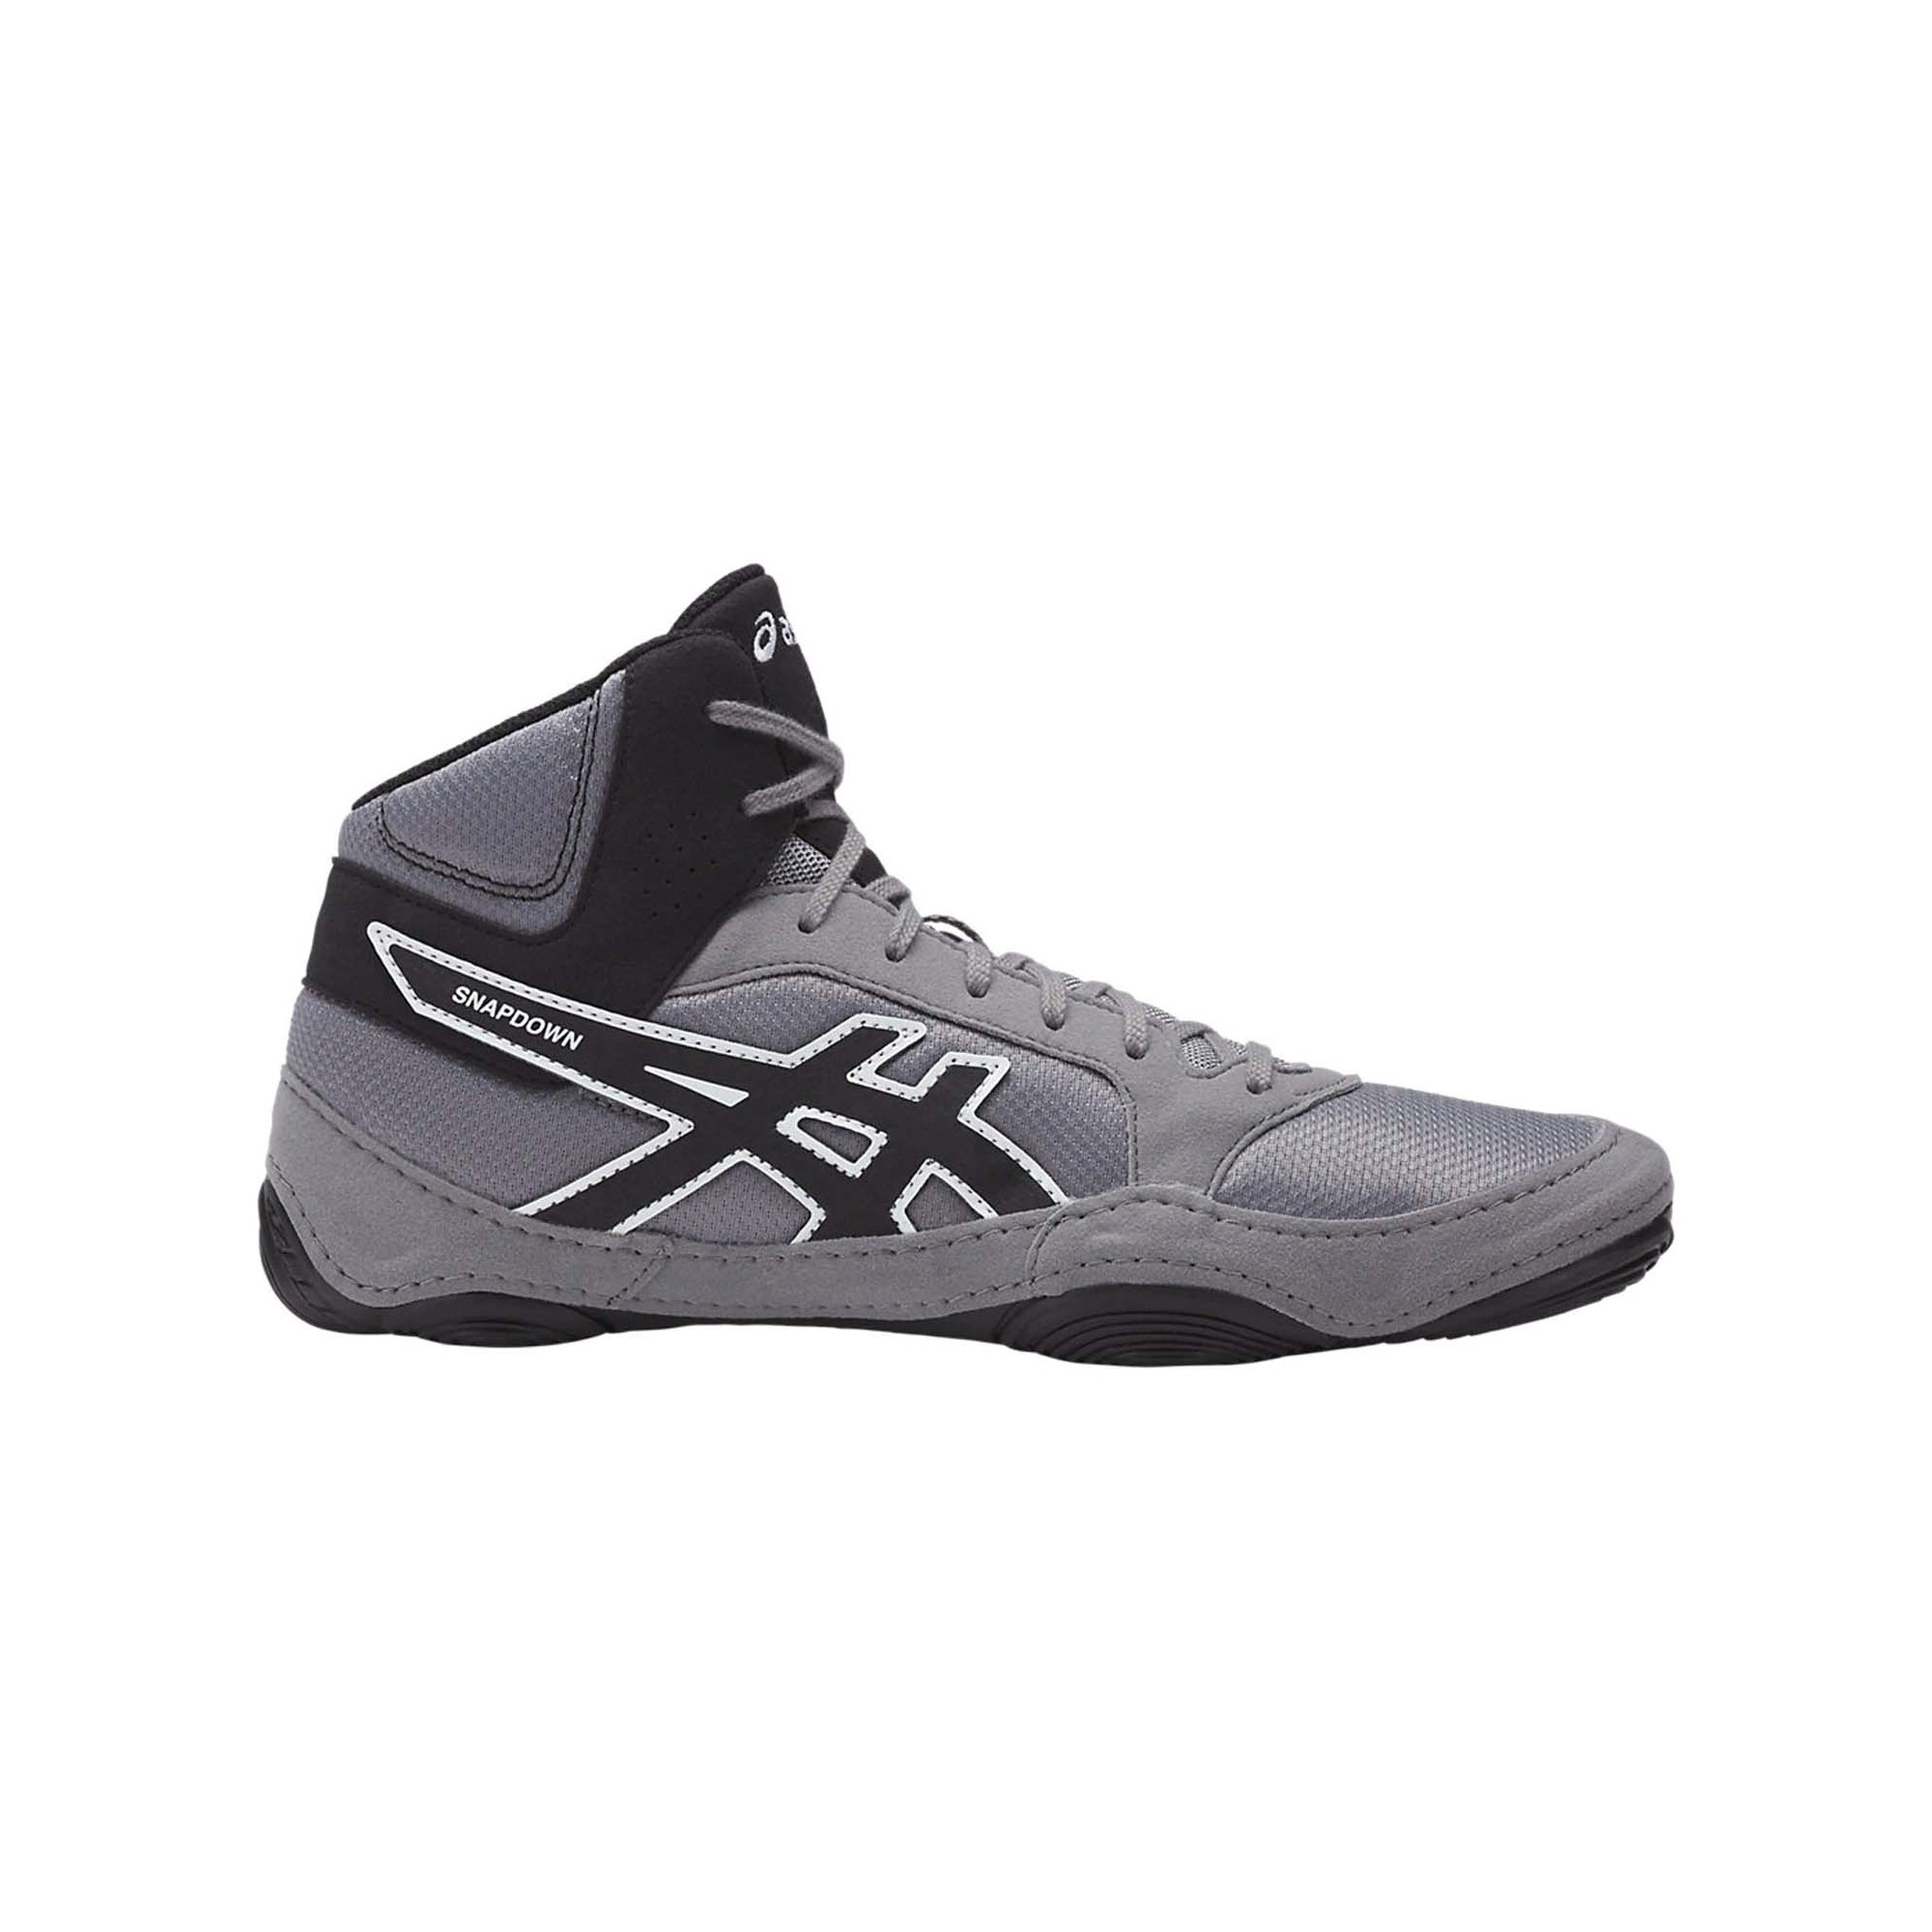 Aluminumblacksilver Snapdown 2 Asics Men's Shoes Wrestling AjSc34R5Lq